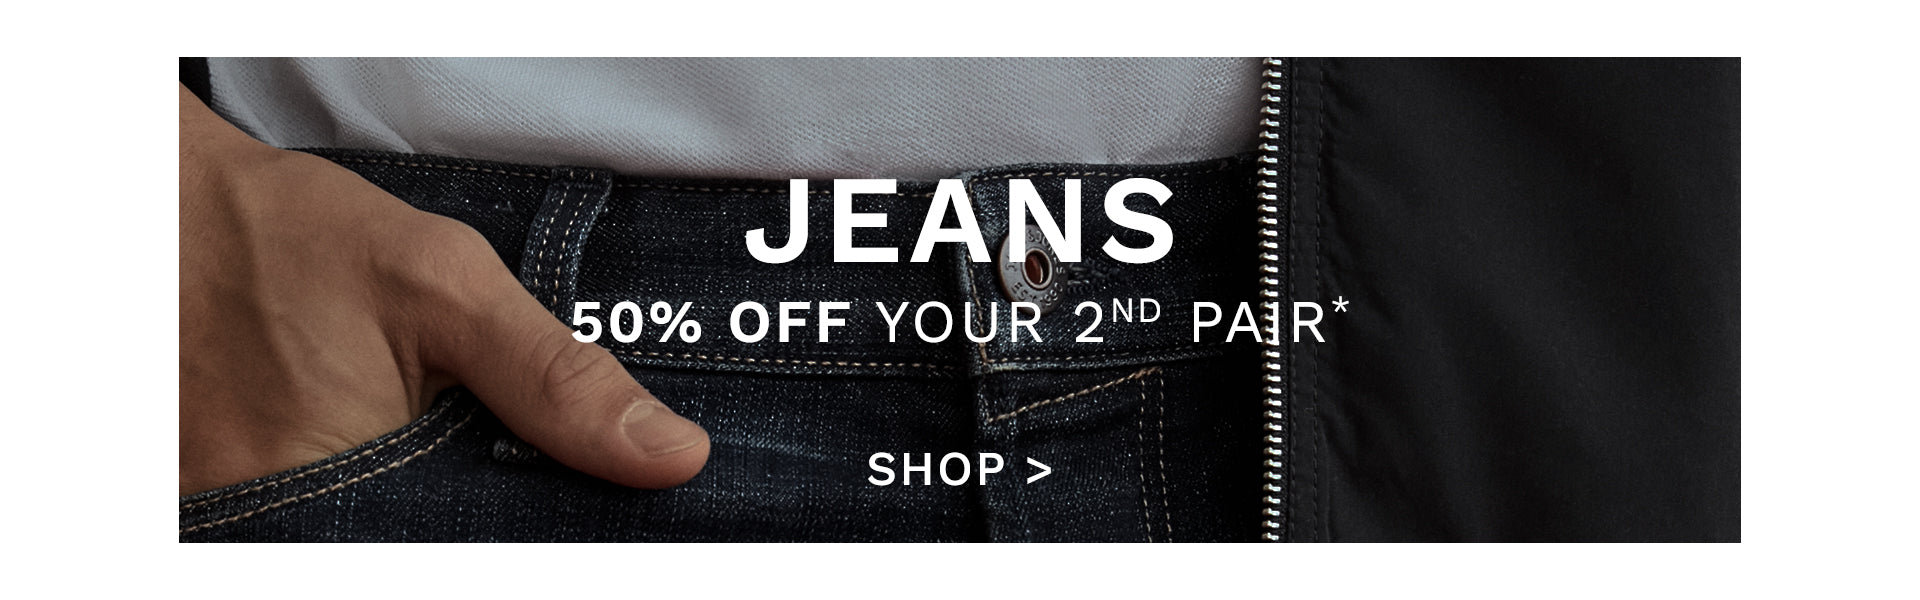 50% OFF YOUR 2ND JEANS